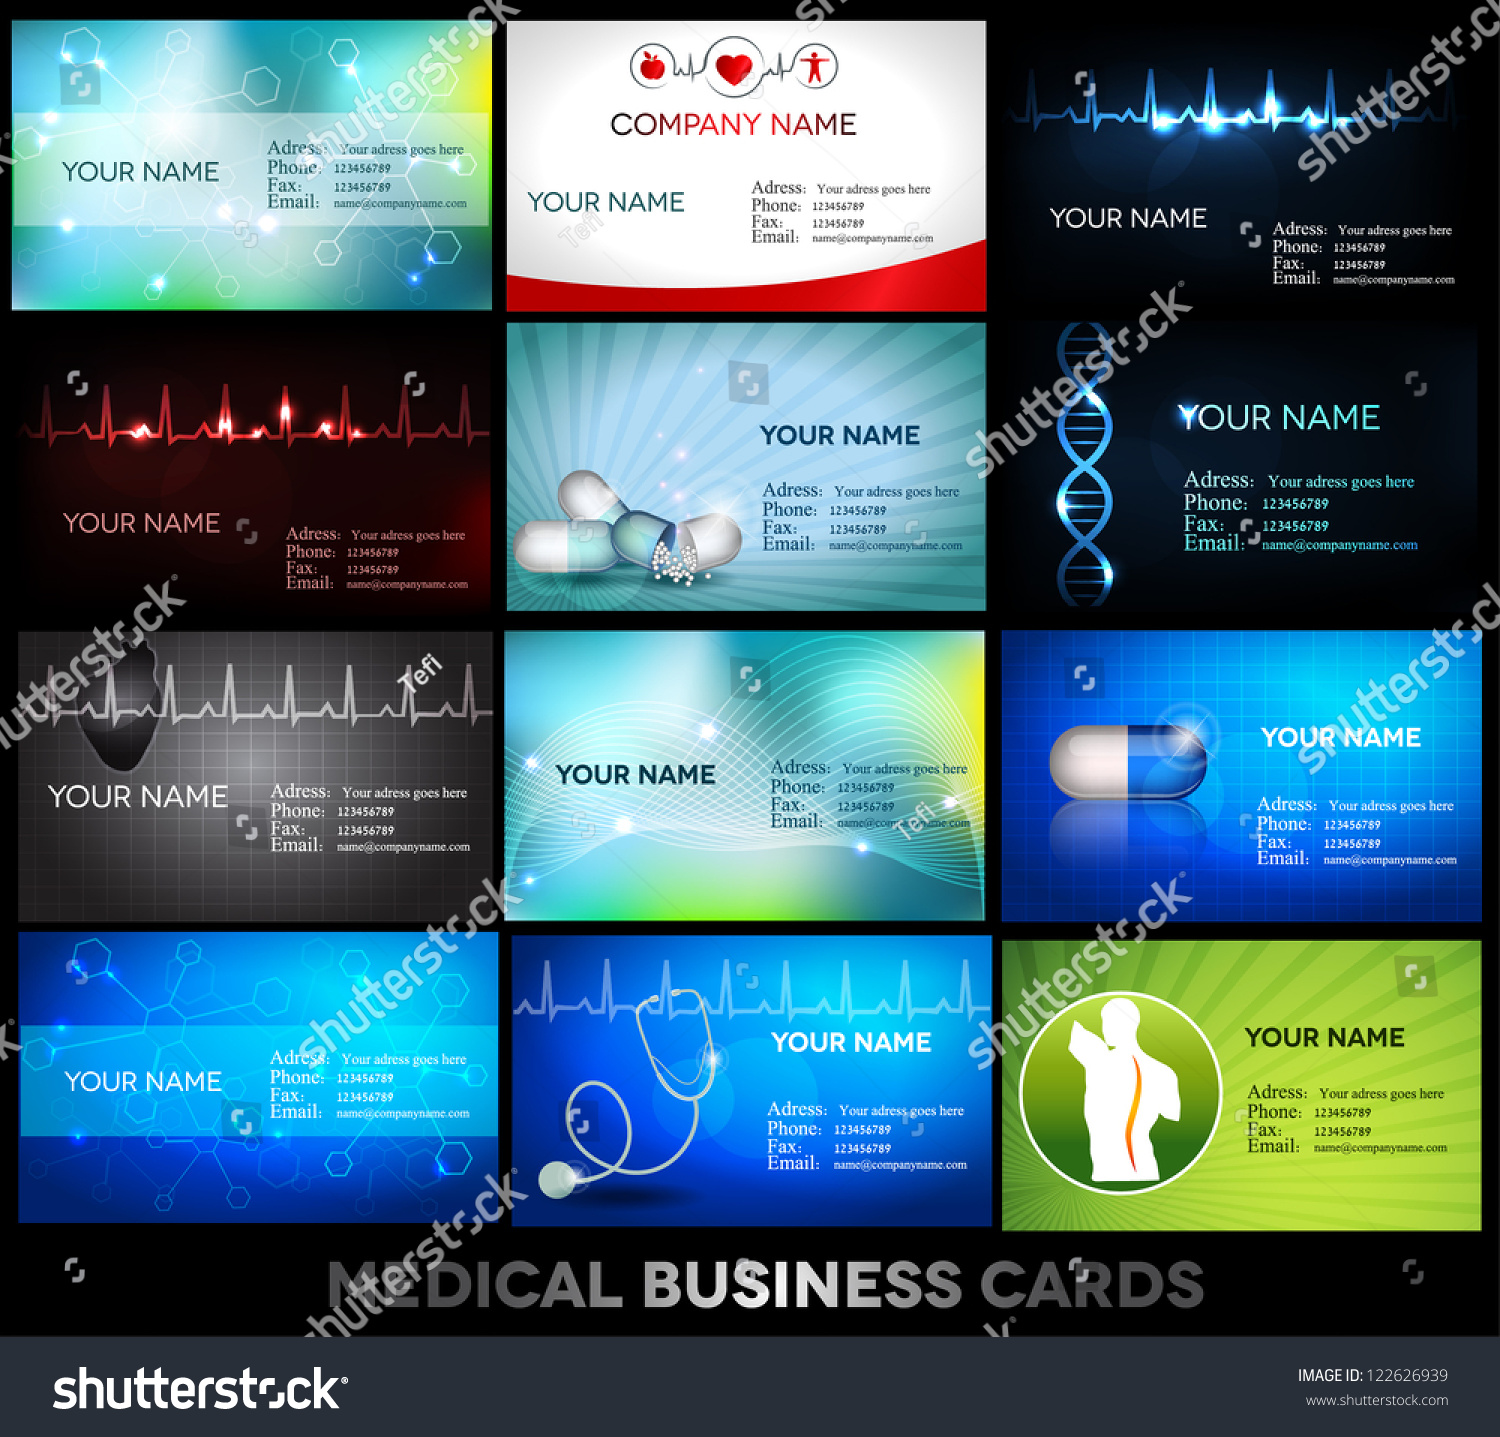 Medical Business Cards Collection Bright Elegant Stock Vector ...